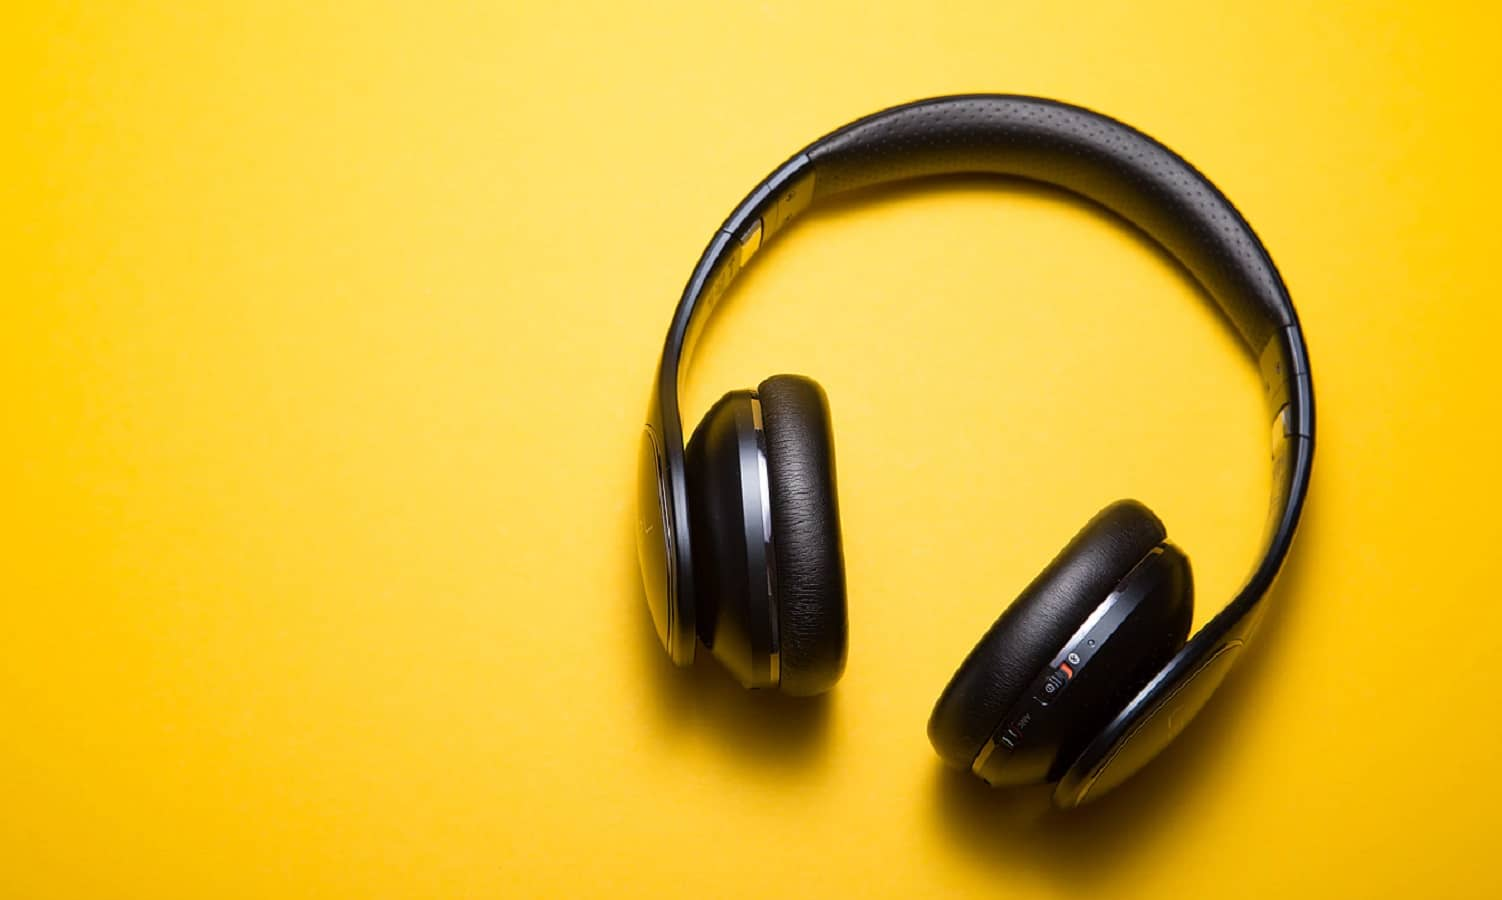 streaming music lossless files with headphones